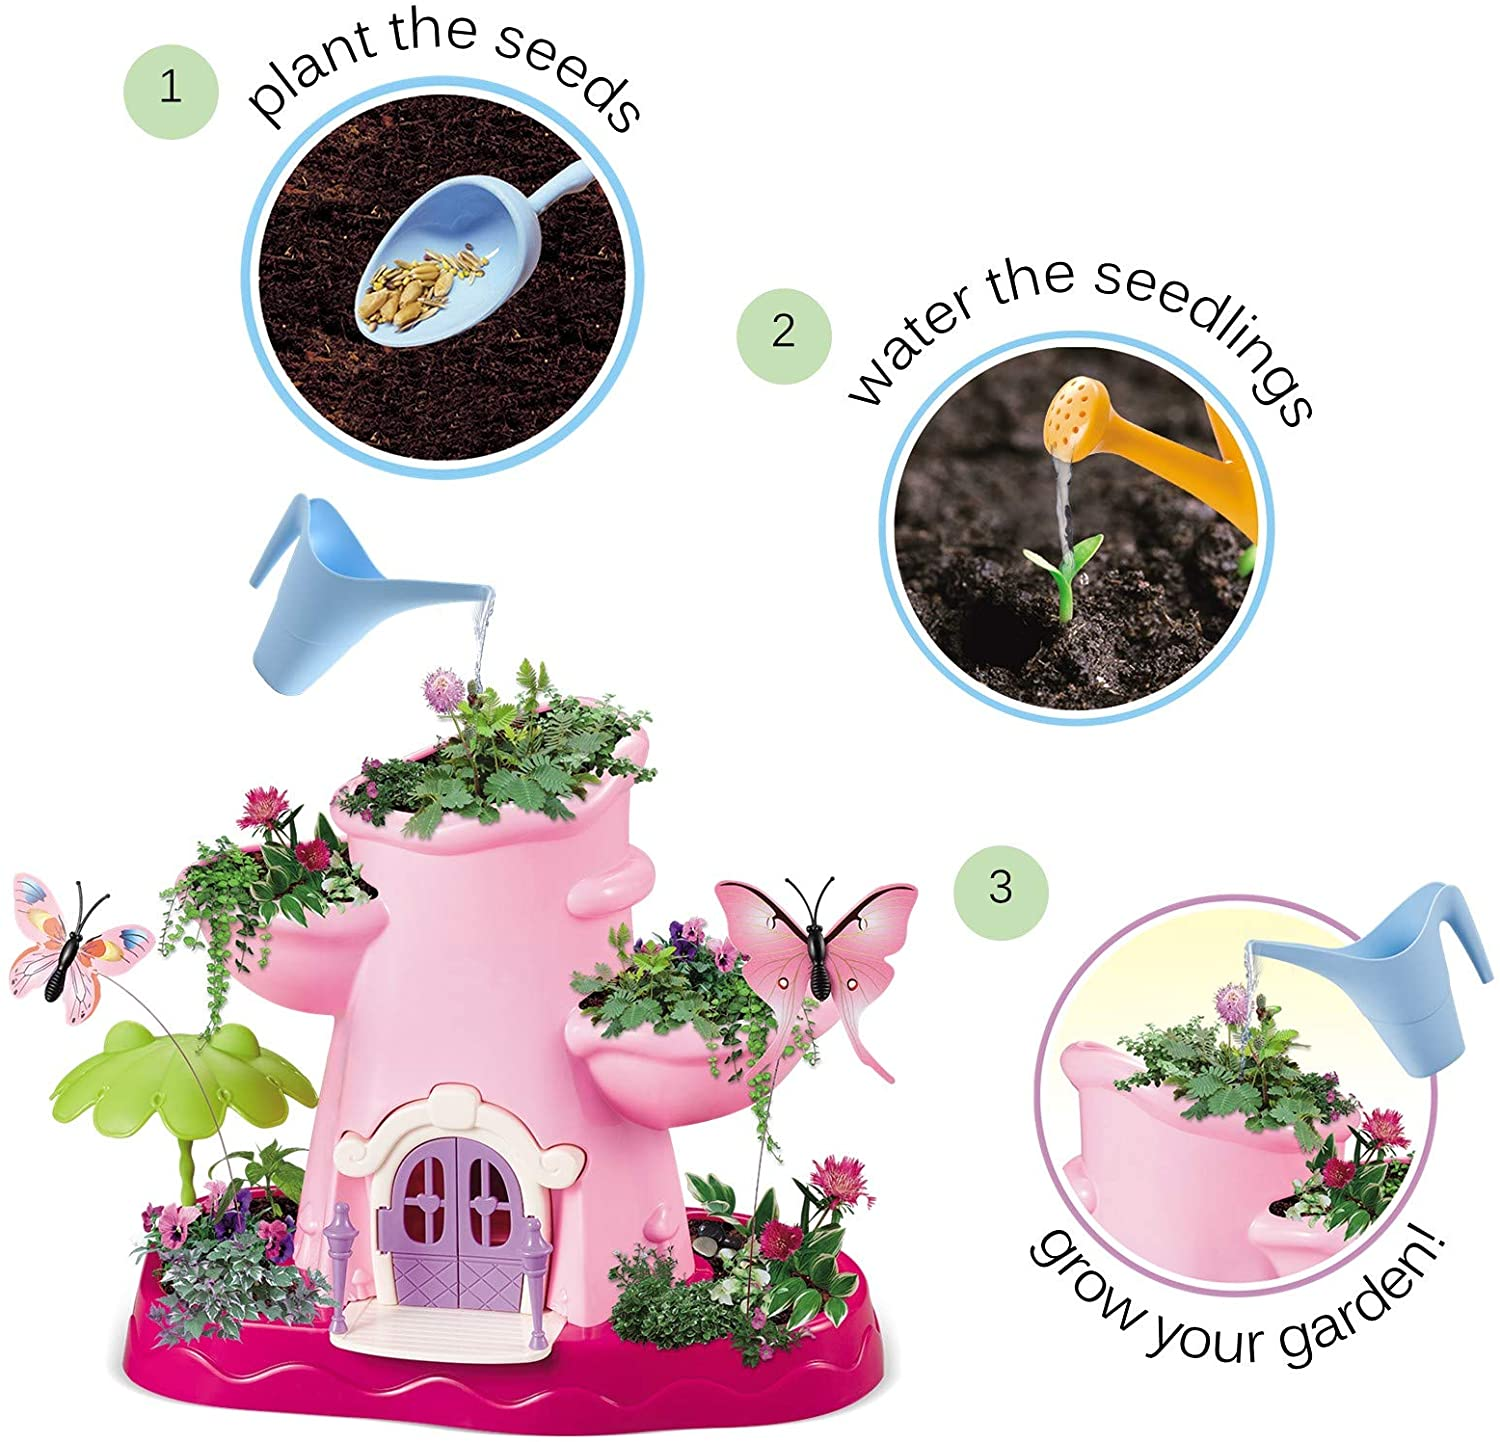 Kids Magical Garden Growing Kit Includes Tools Seeds Soil Flower Plant Tree Interactive Play Fairy Toys Inspires Horticulture Learning Great Gift for Children Girls Pink